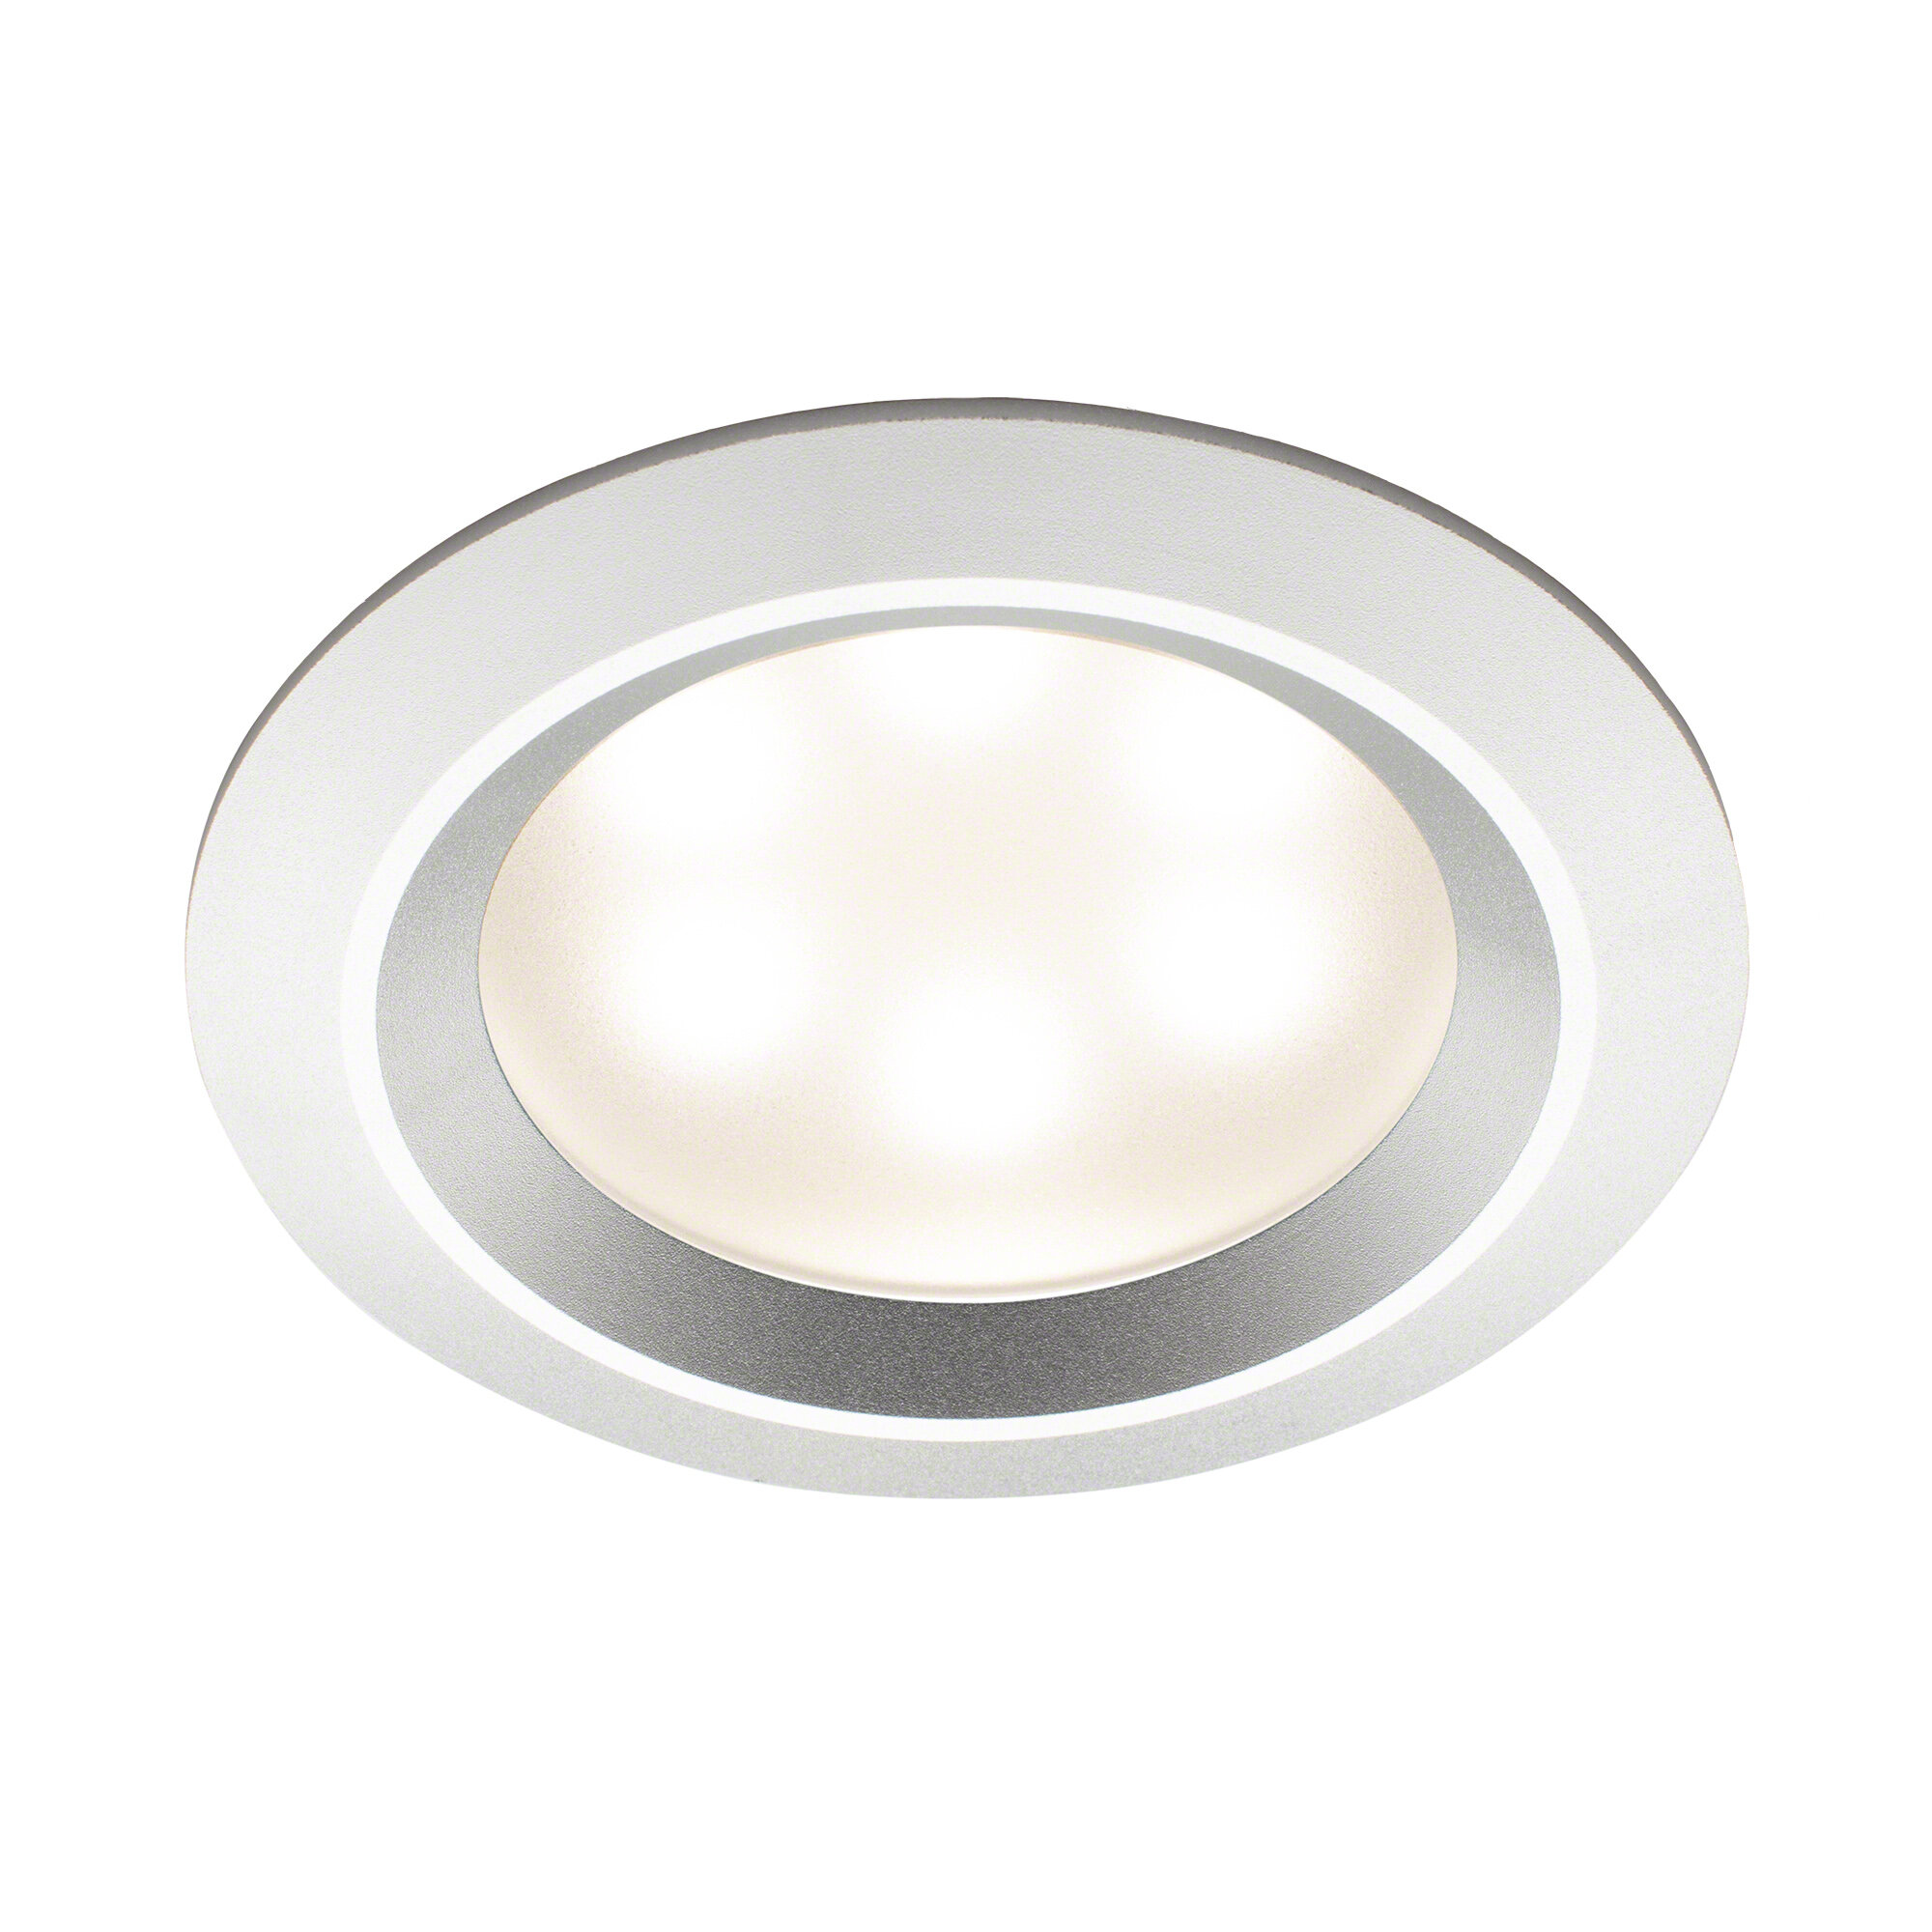 Mr Steam 5 Led Recessed Lighting Kit